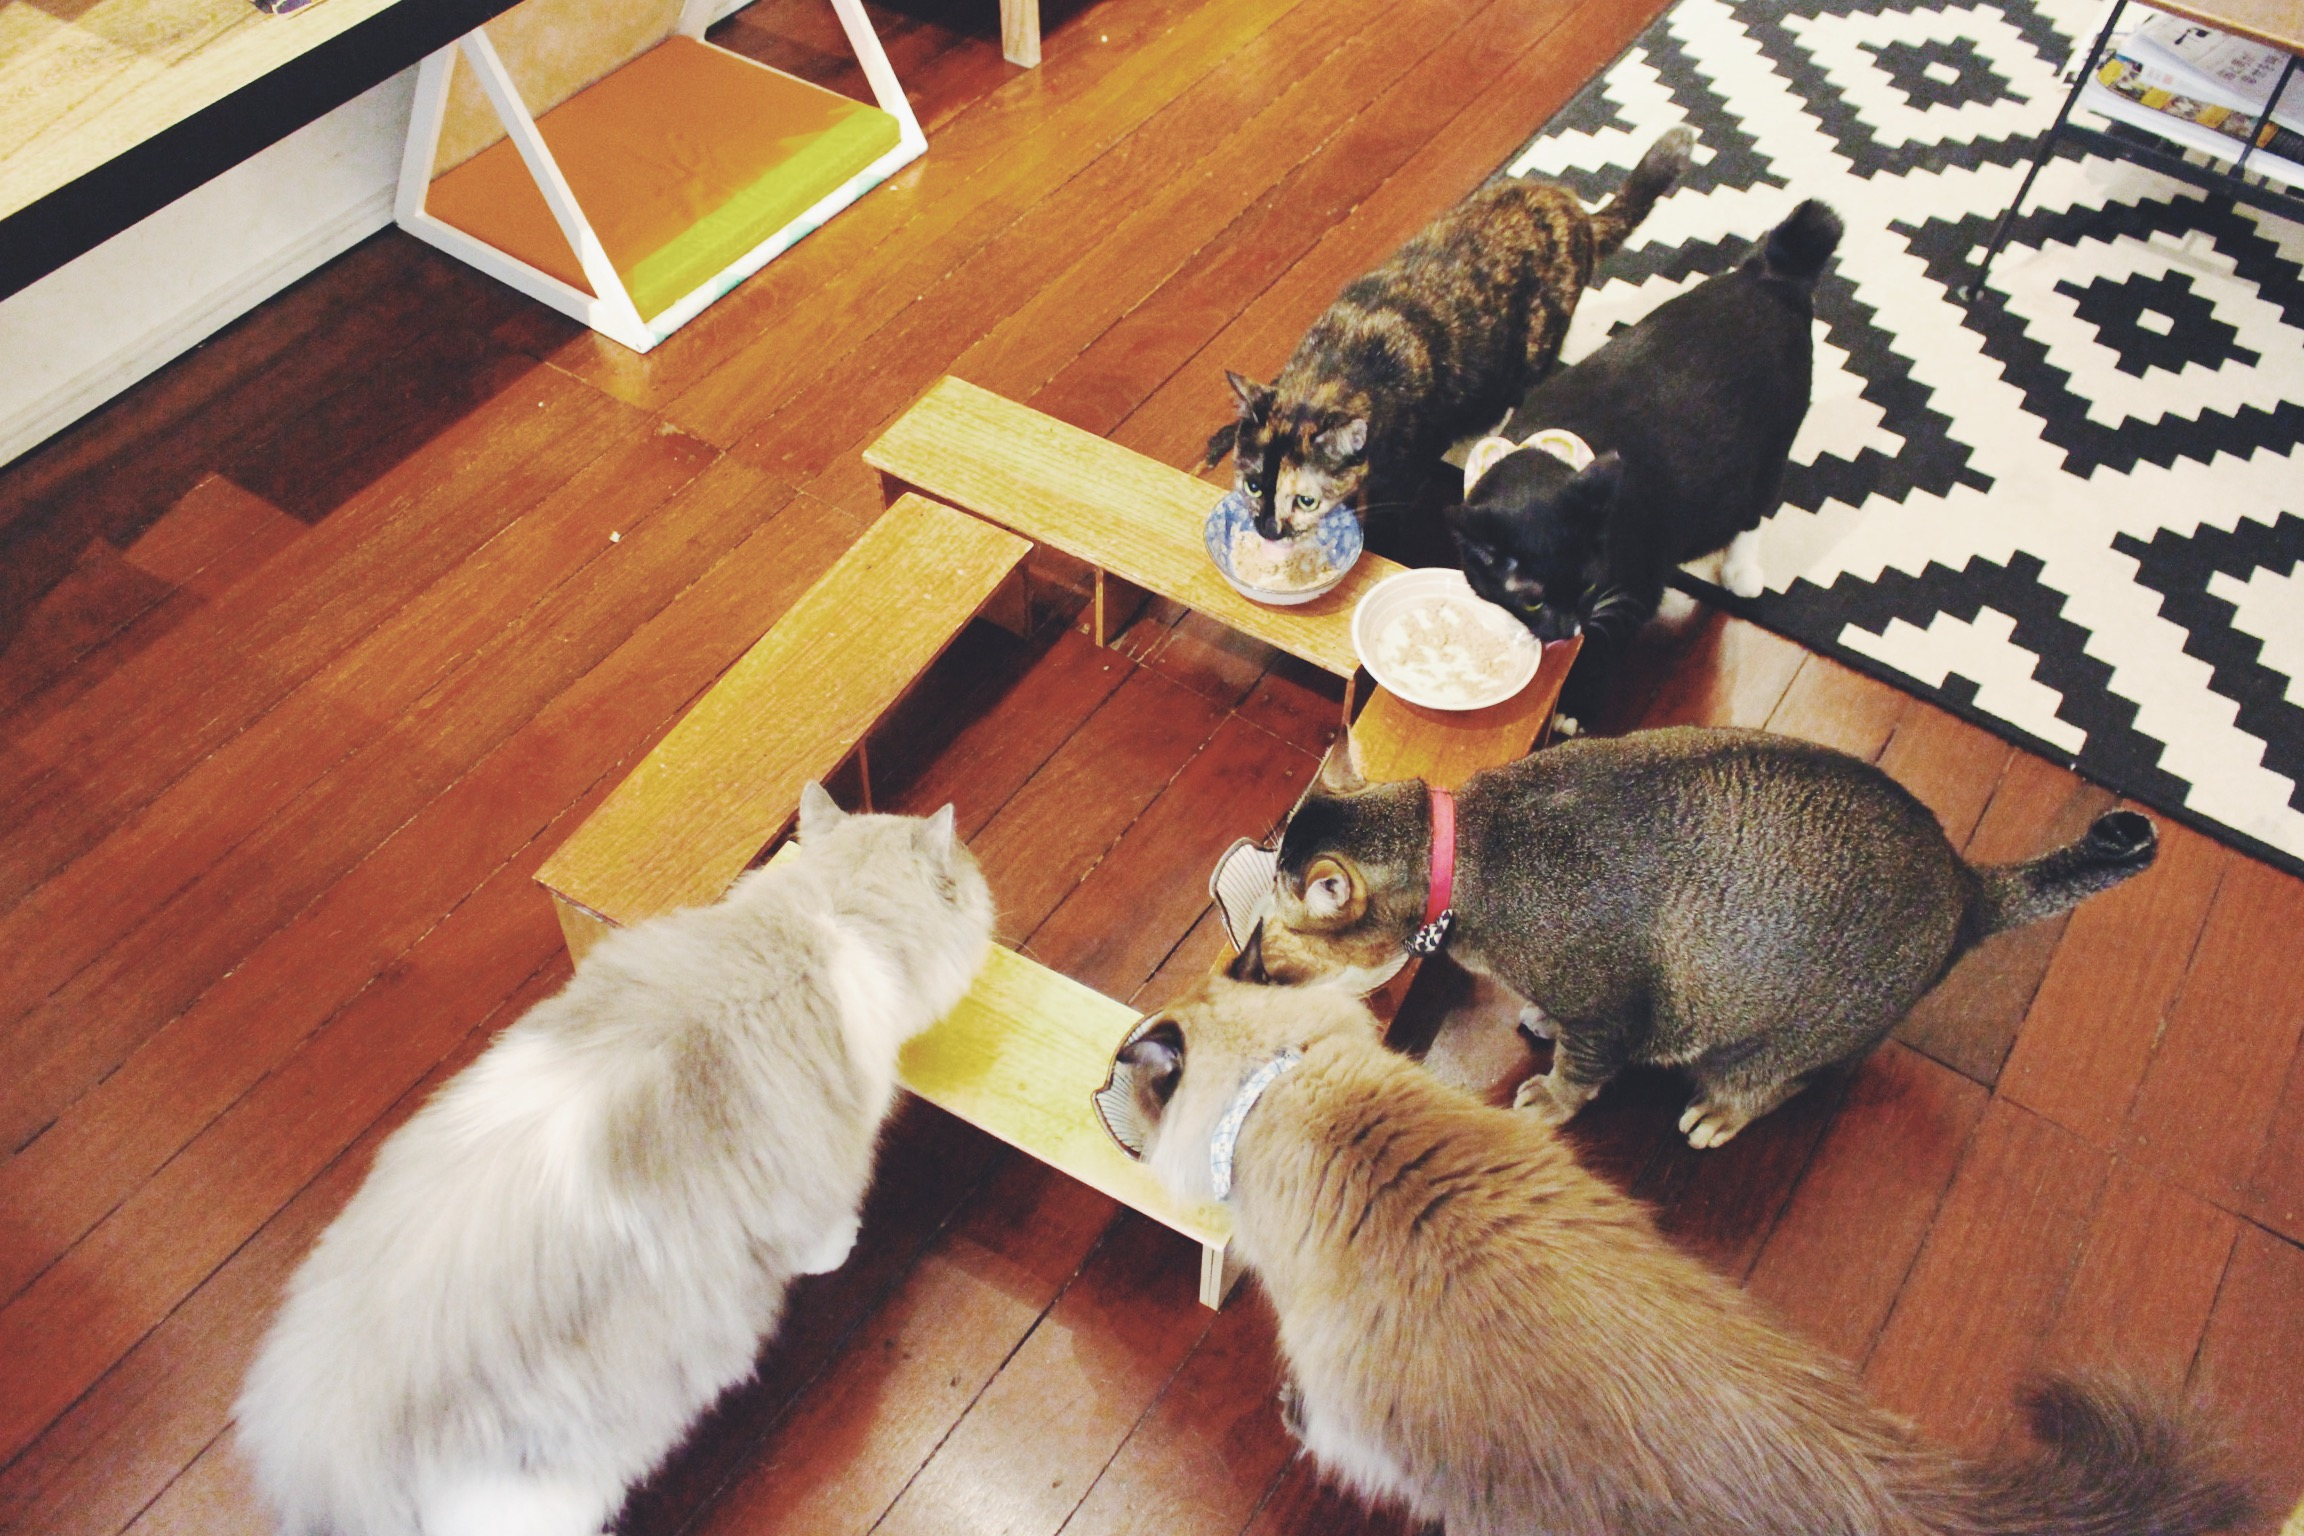 Feeding time. Photo courtesy: Connected To India, overthemoosic